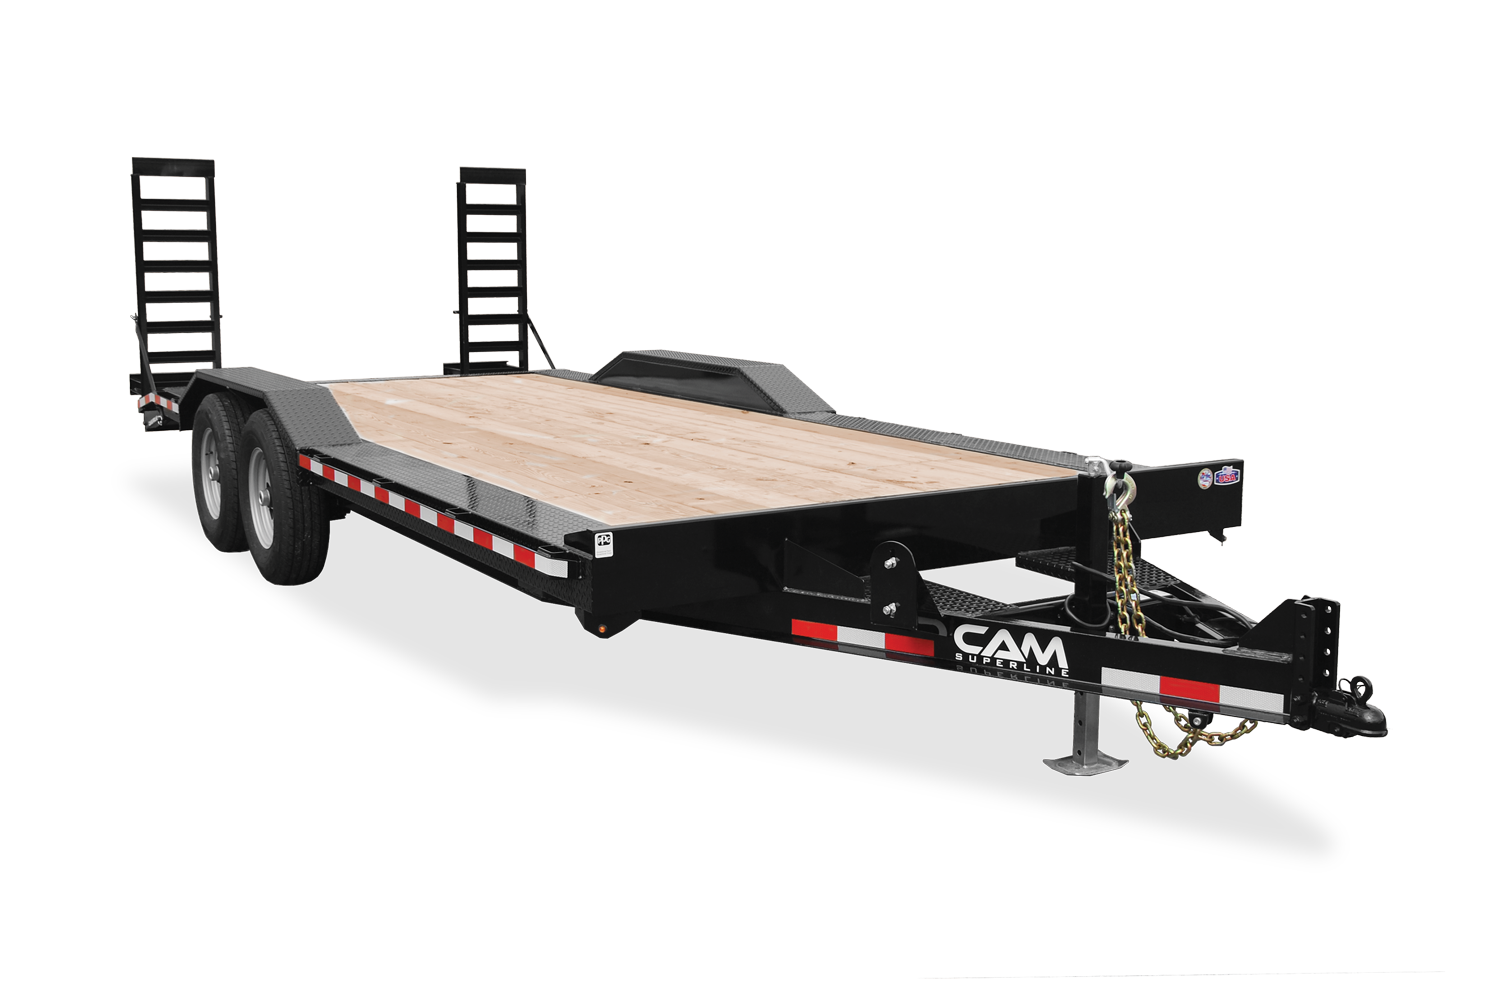 2021 Cam Superline 7 Ton Equipment Hauler Beavertail Traile